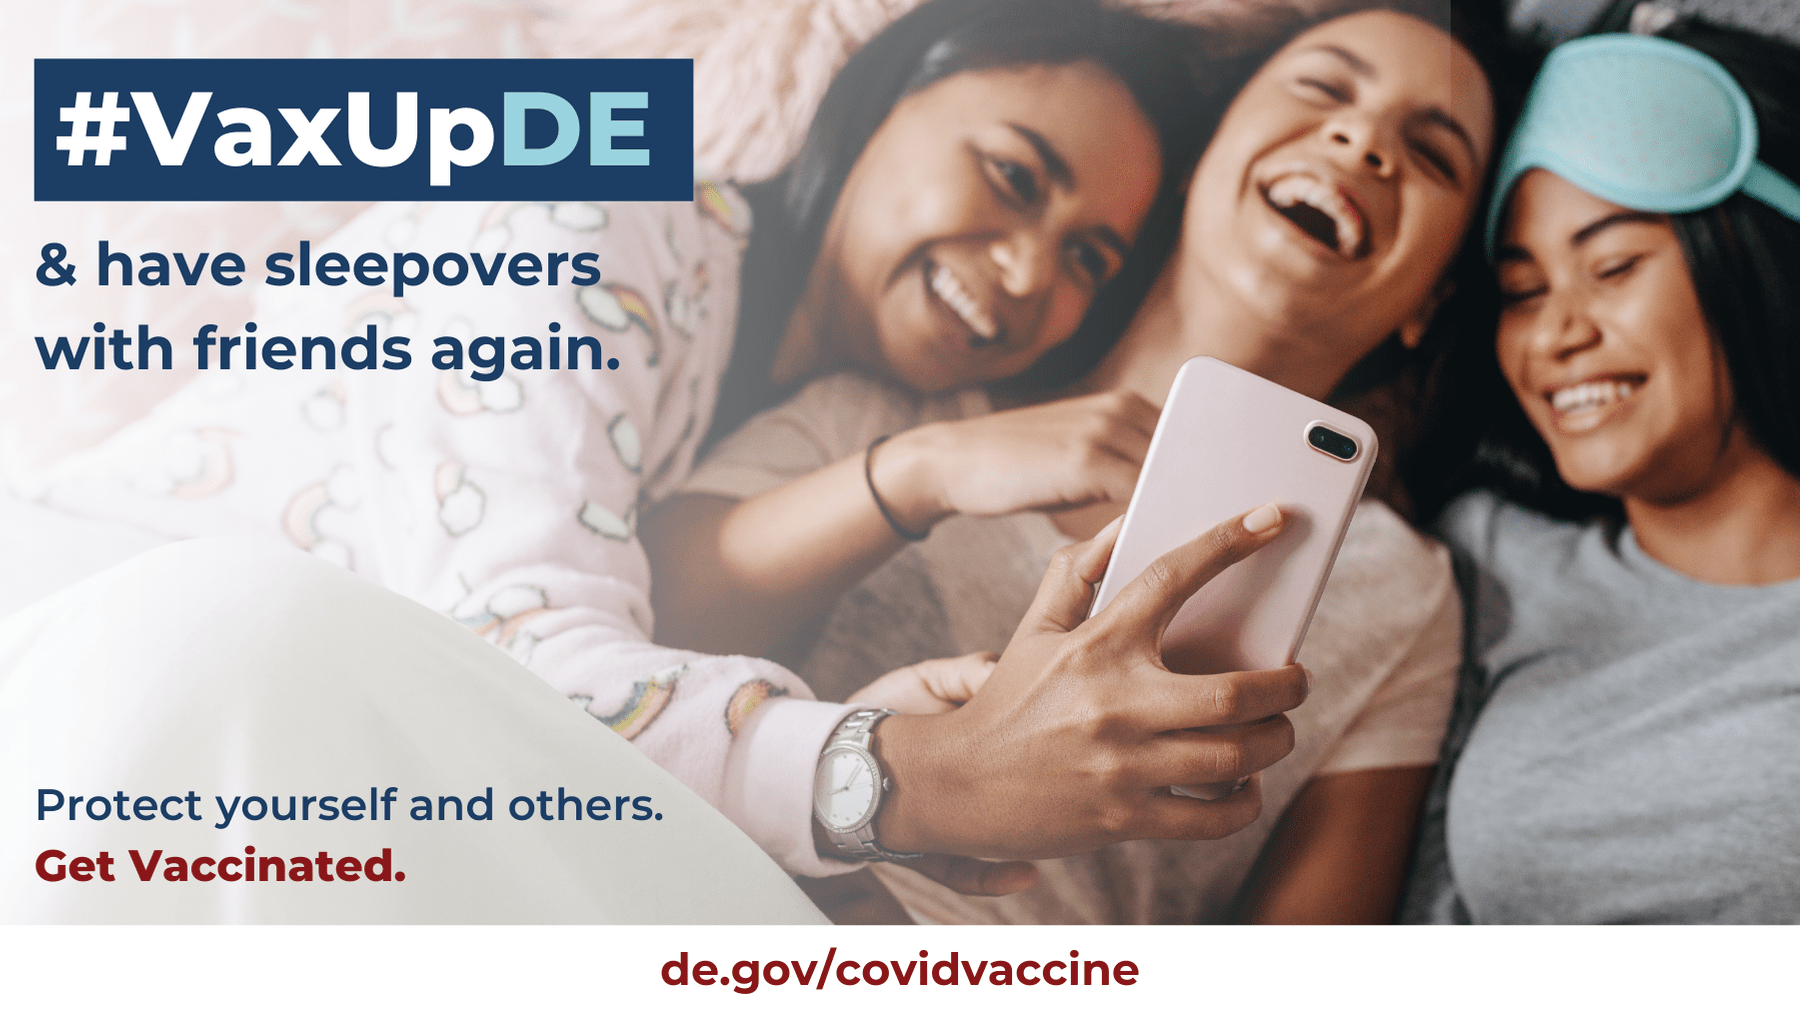 VaxUpDE. Protect yourself and others. Get Vaccinated. Teen girls having a sleep over together.